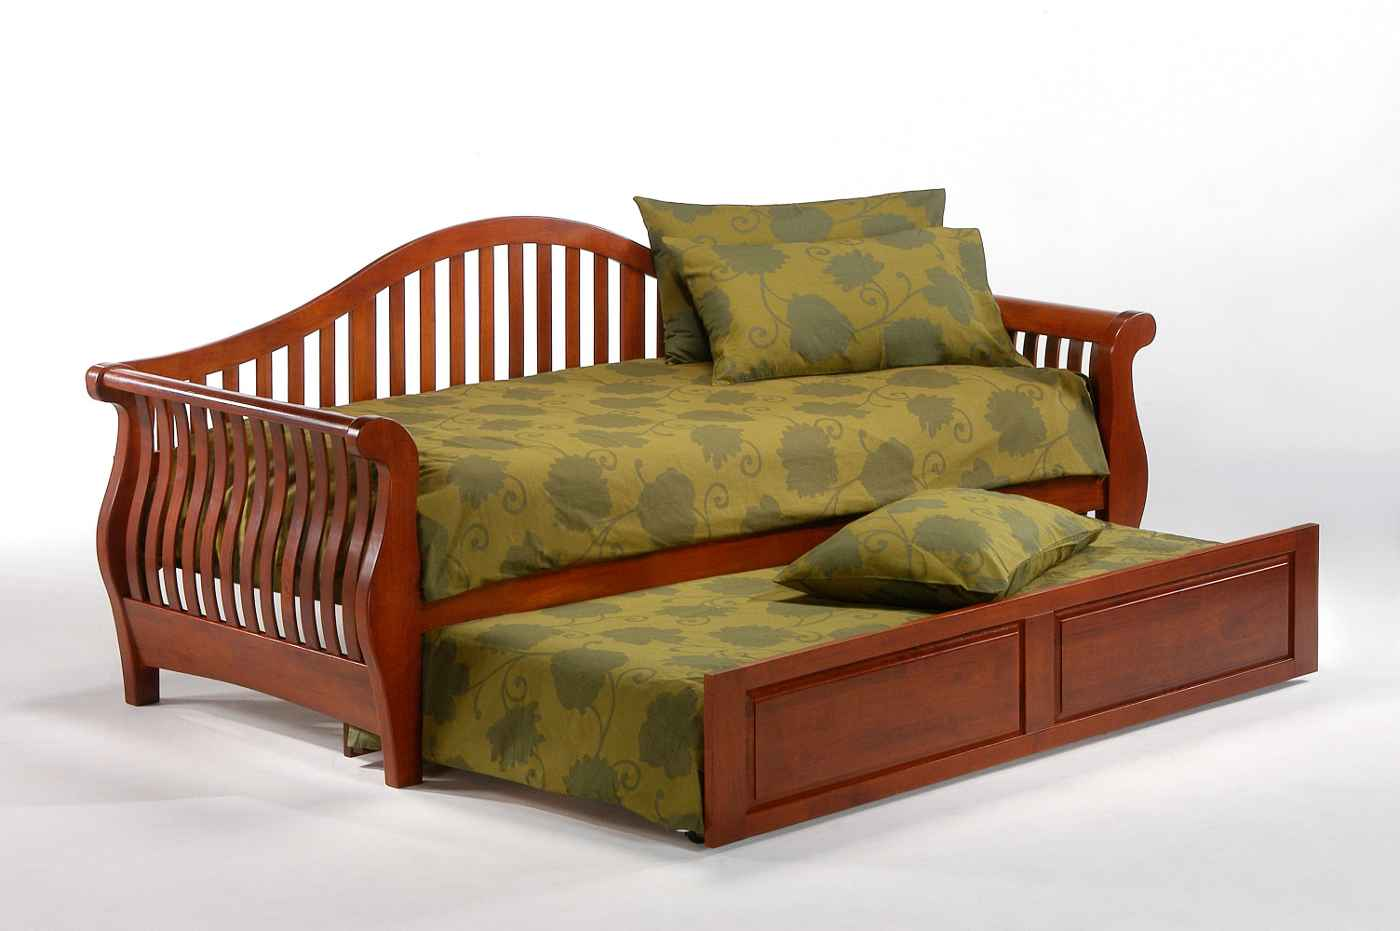 How To Make A Simple Wood Bed Frame